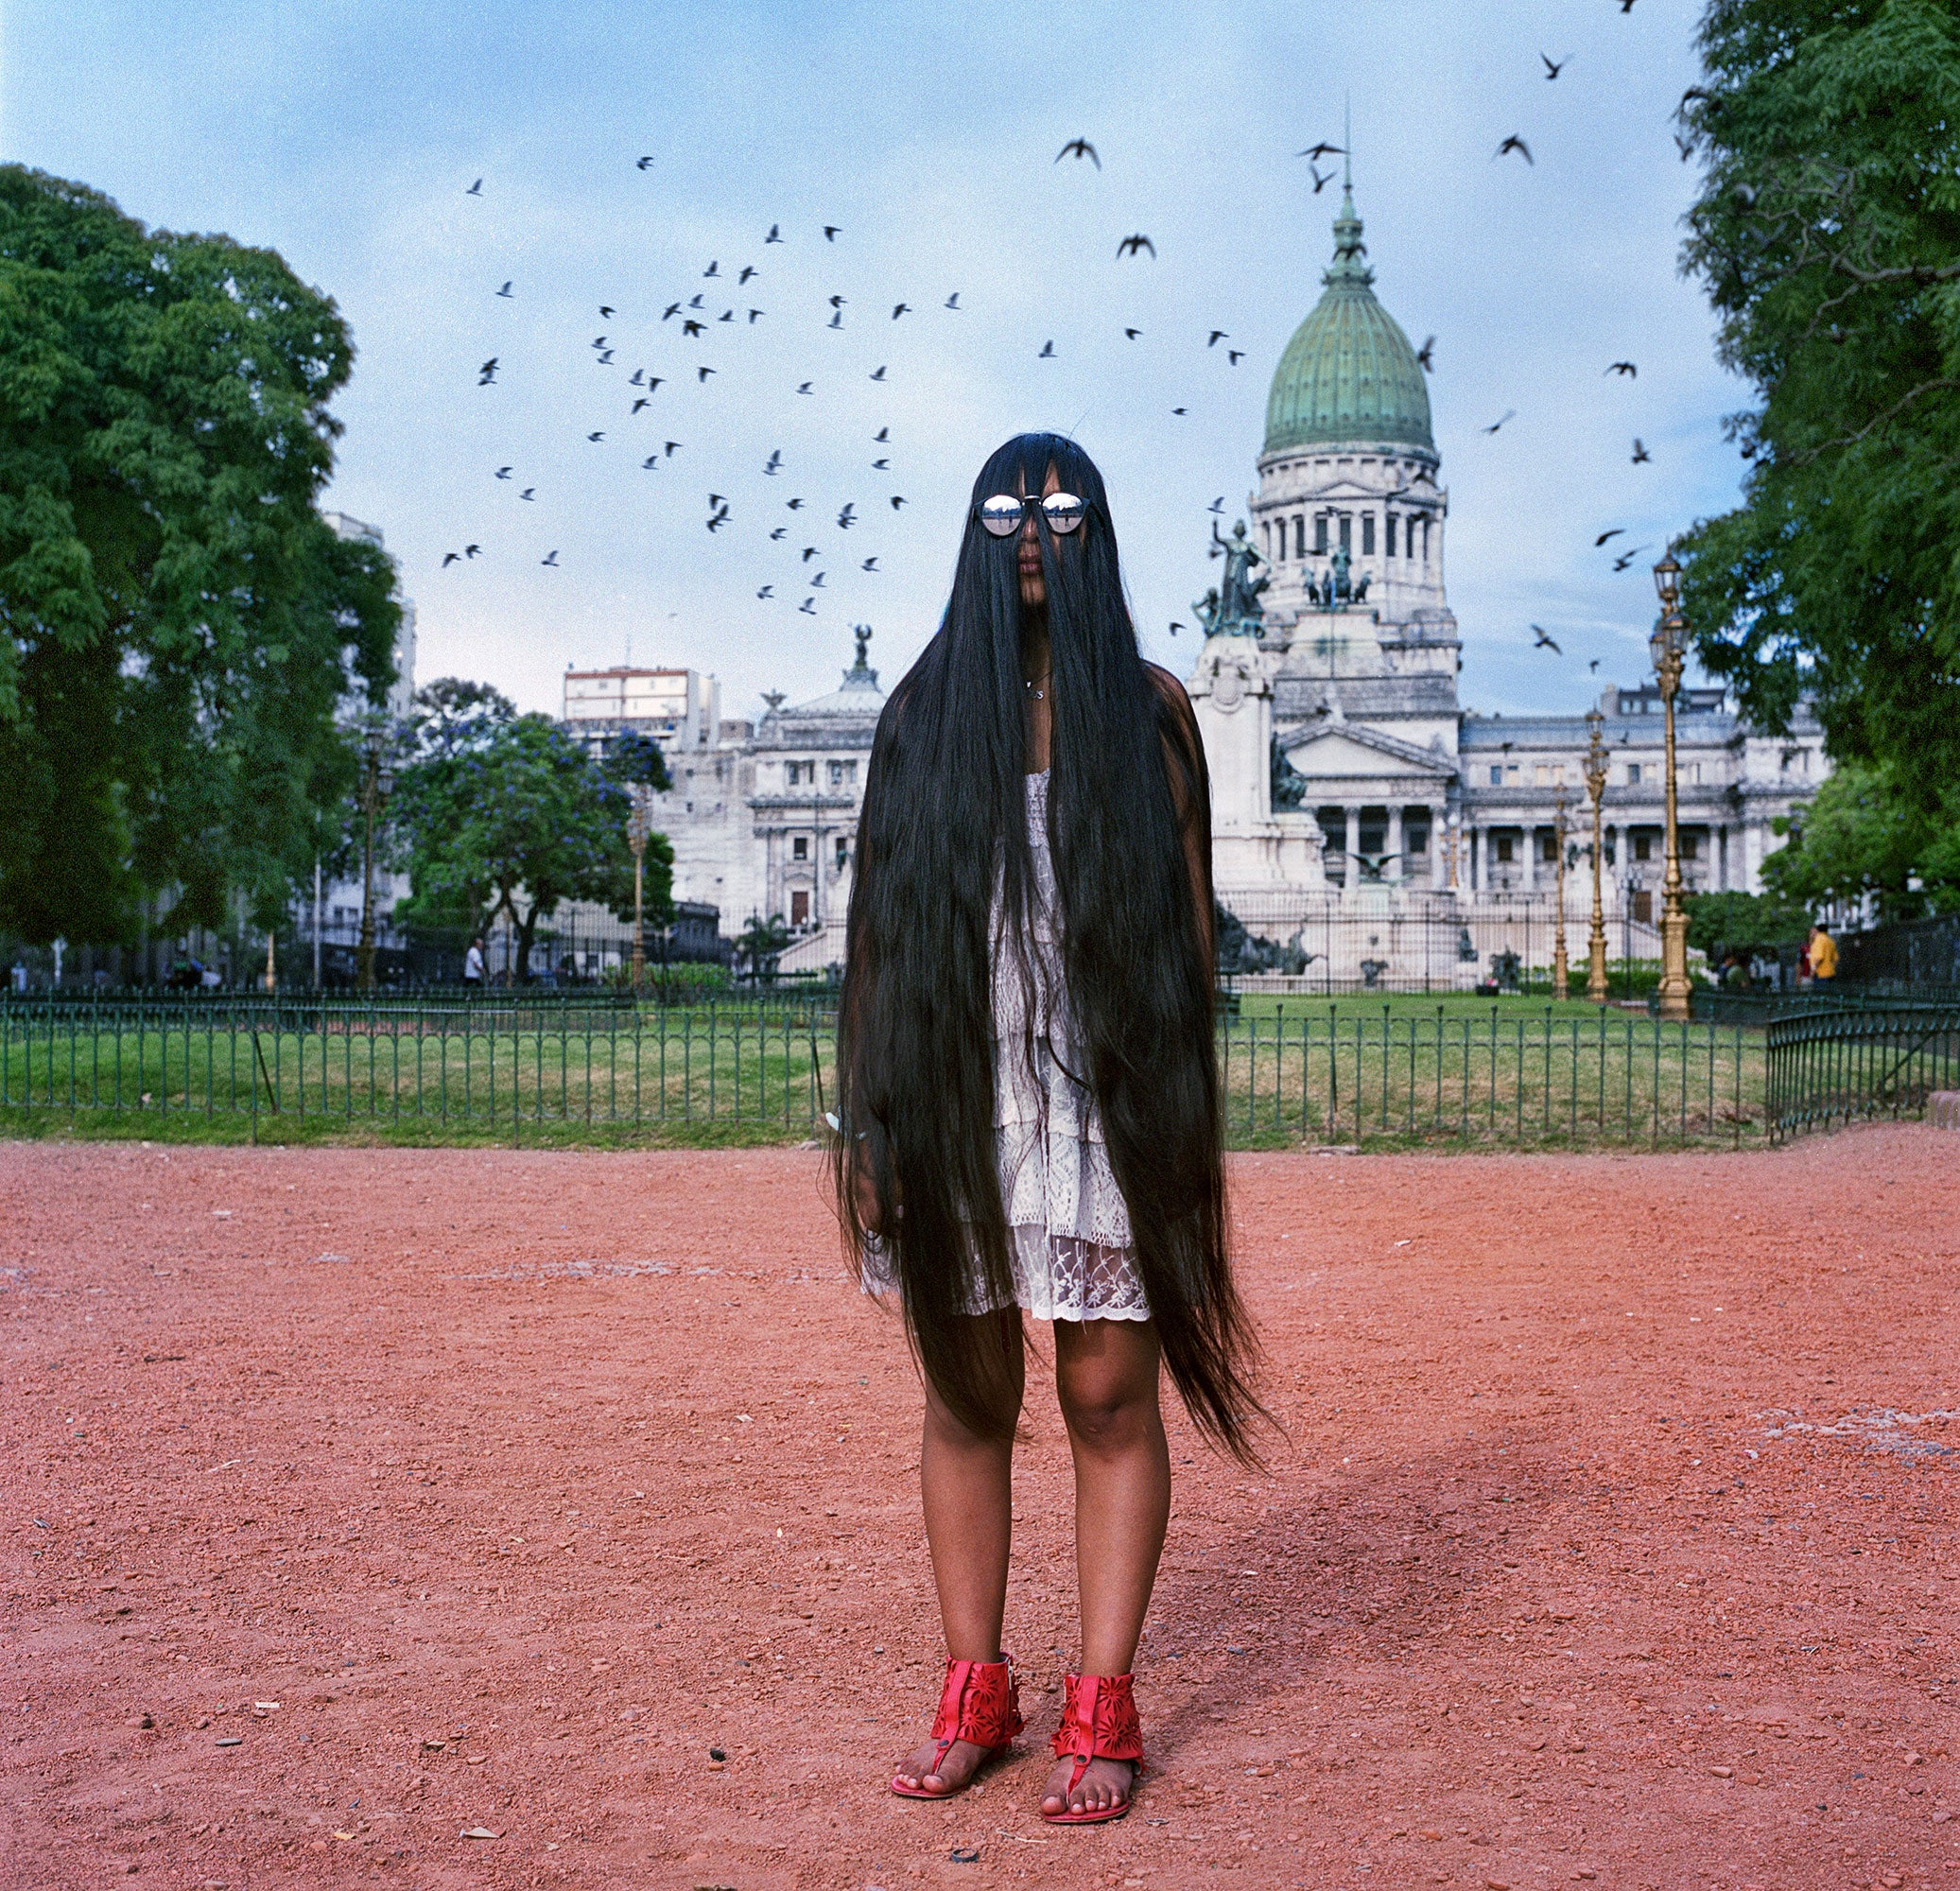 Incredible Photos Of The Long-Haired Women Of Argentina